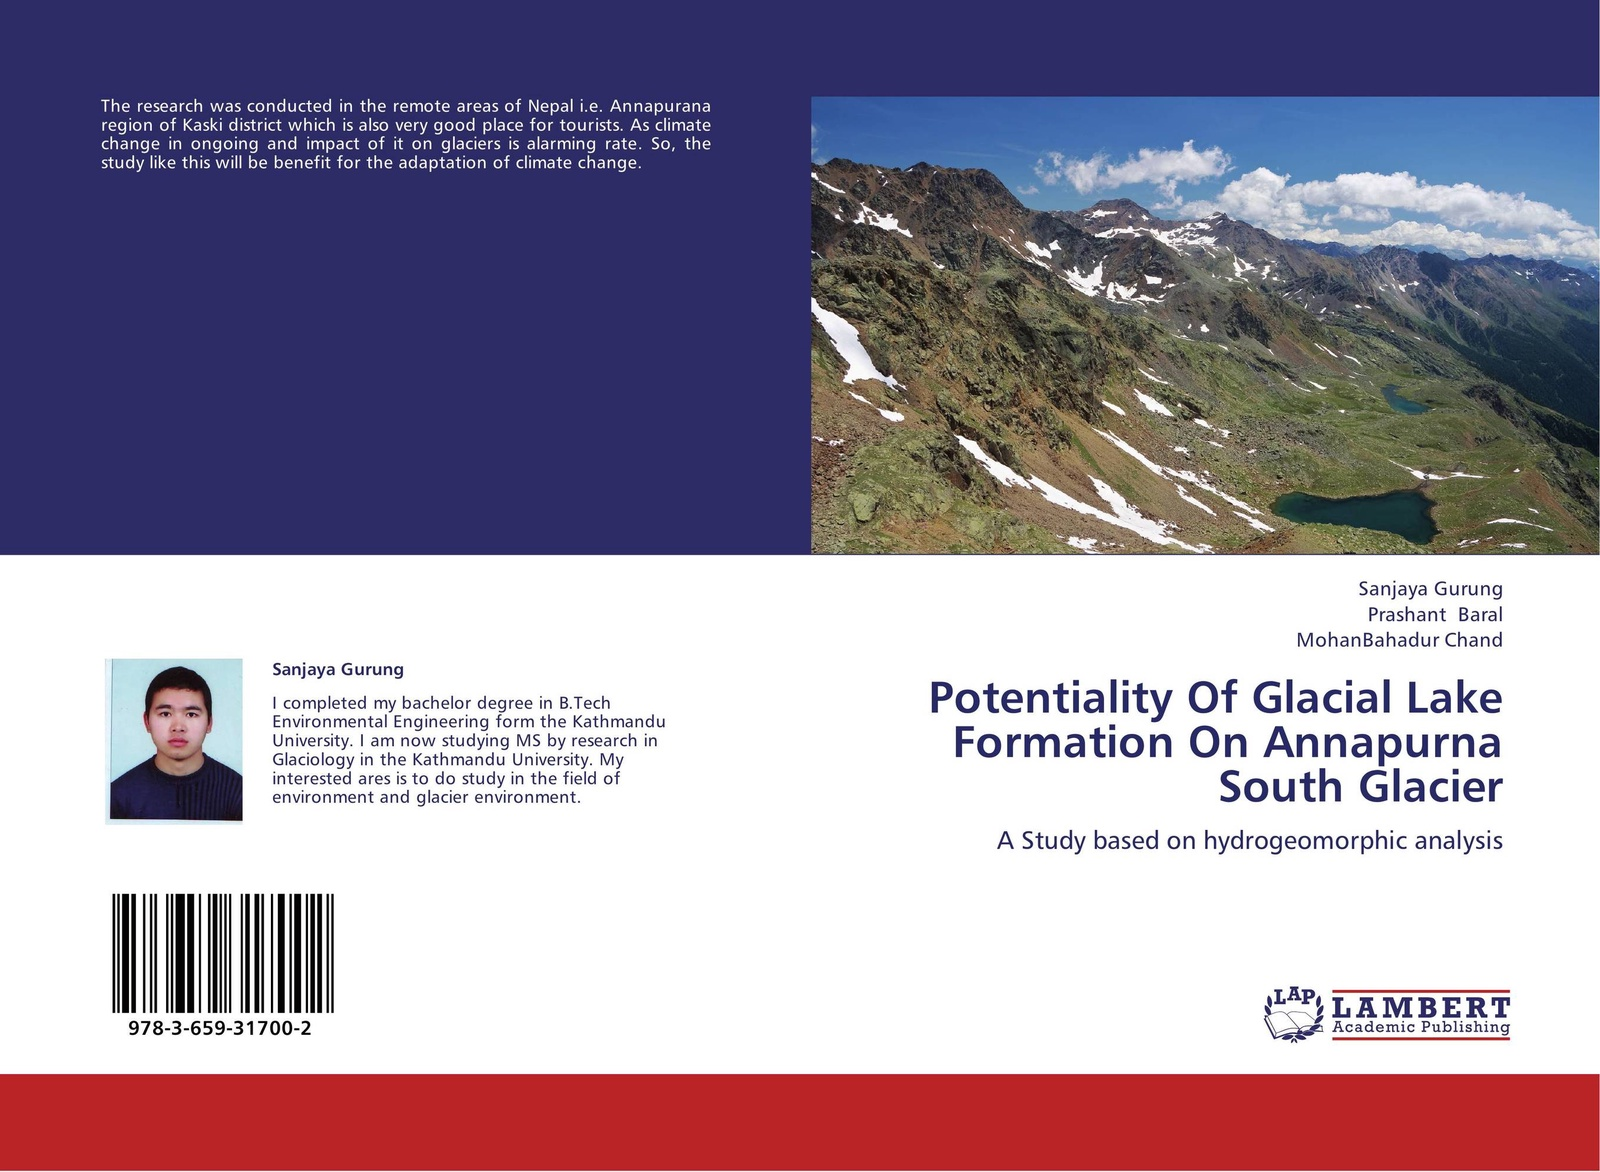 Sanjaya Gurung,Prashant Baral and MohanBahadur Chand Potentiality Of Glacial Lake Formation On Annapurna South Glacier ana lopez modelling the impact of climate change on water resources